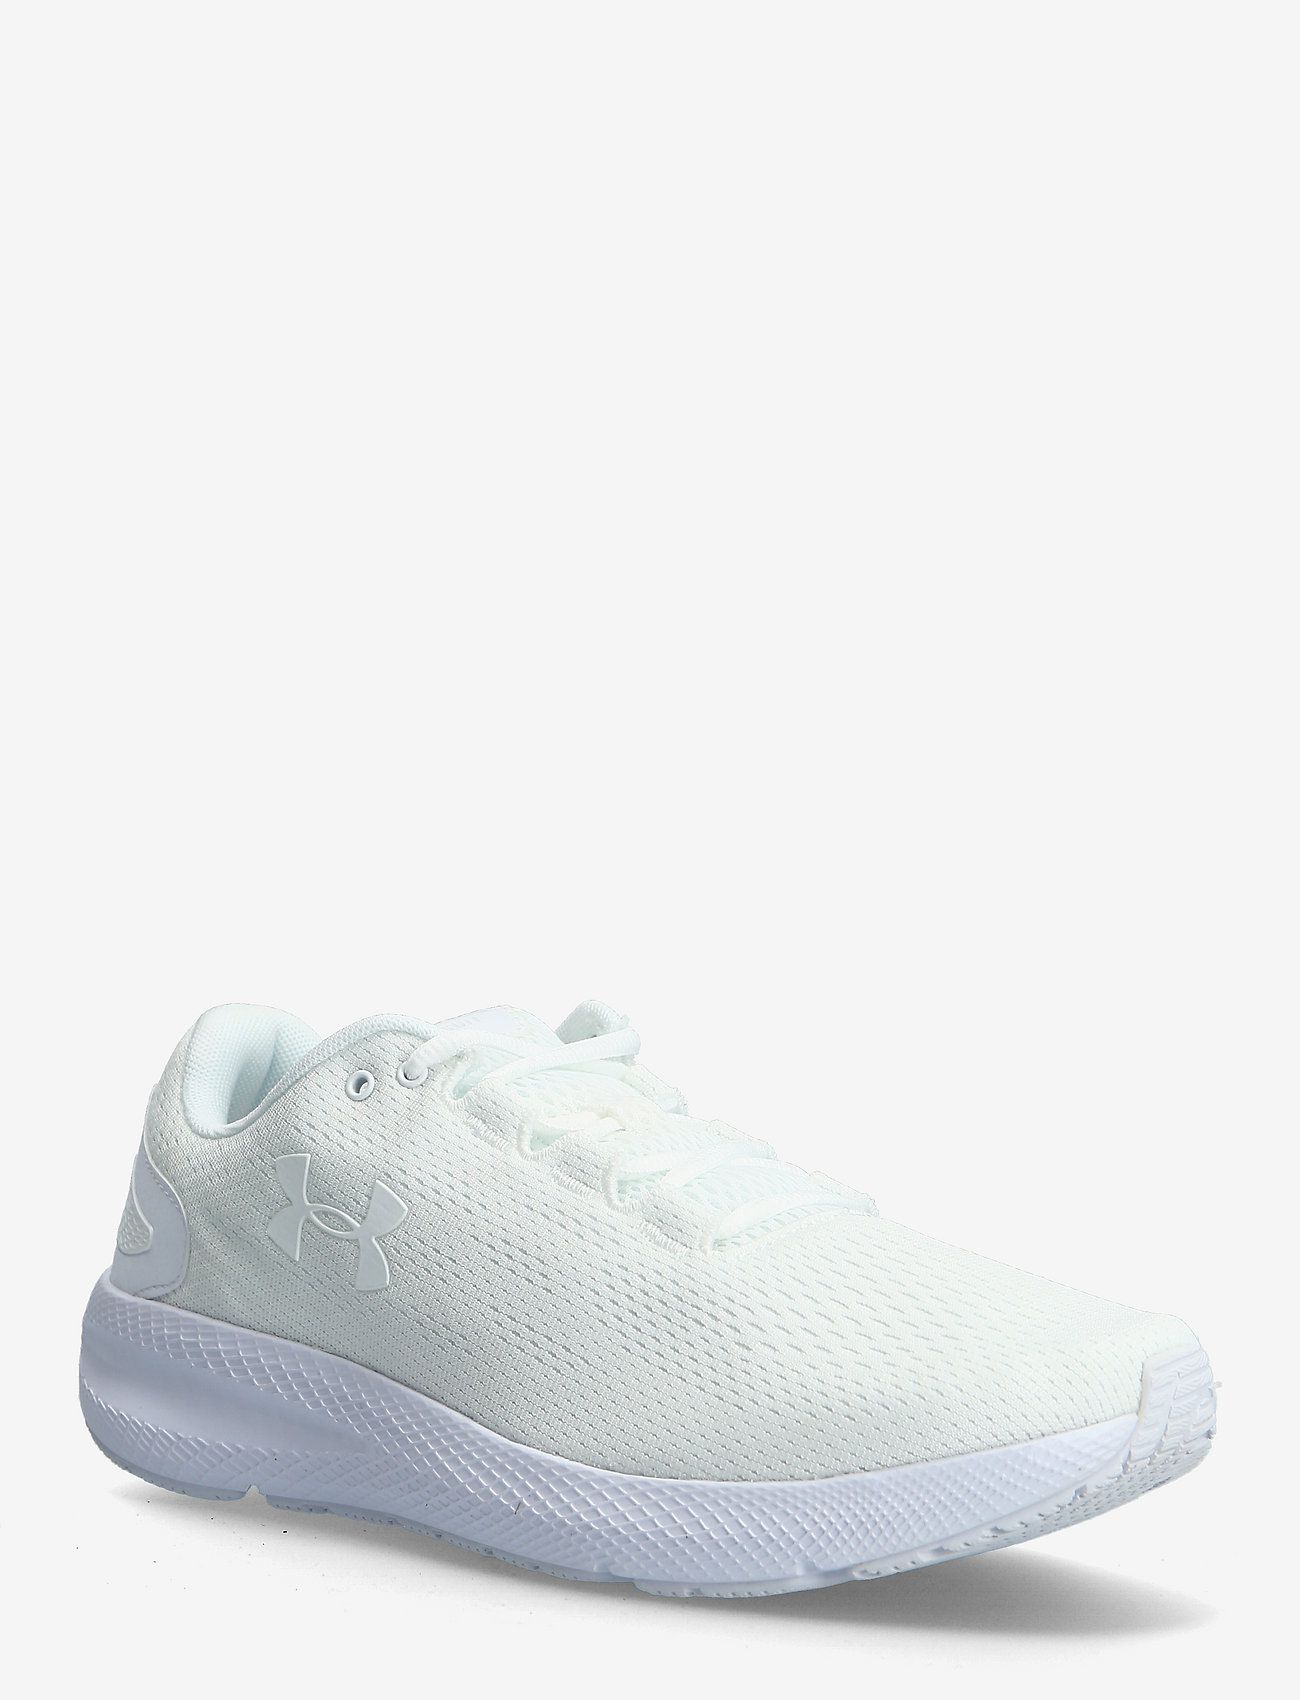 Under Armour - UA Charged Pursuit 2 - löbesko - white - 0